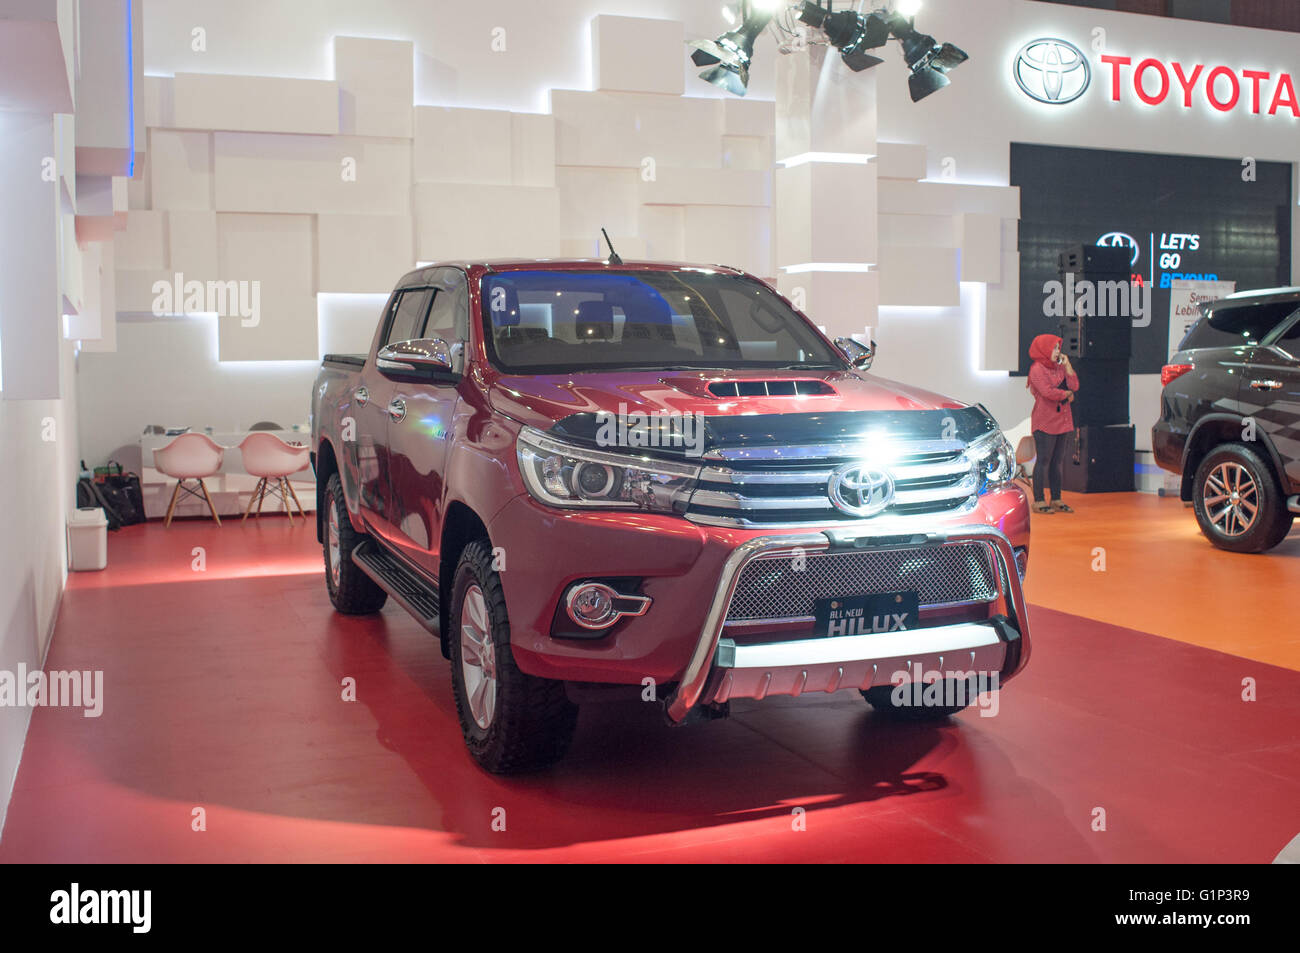 Makassar, Indonesia. 18th May, 2016. Toyota exhibits All New Hilux at GIIAS Makassar Autoshow in Makassar, Indonesia. - Stock Image